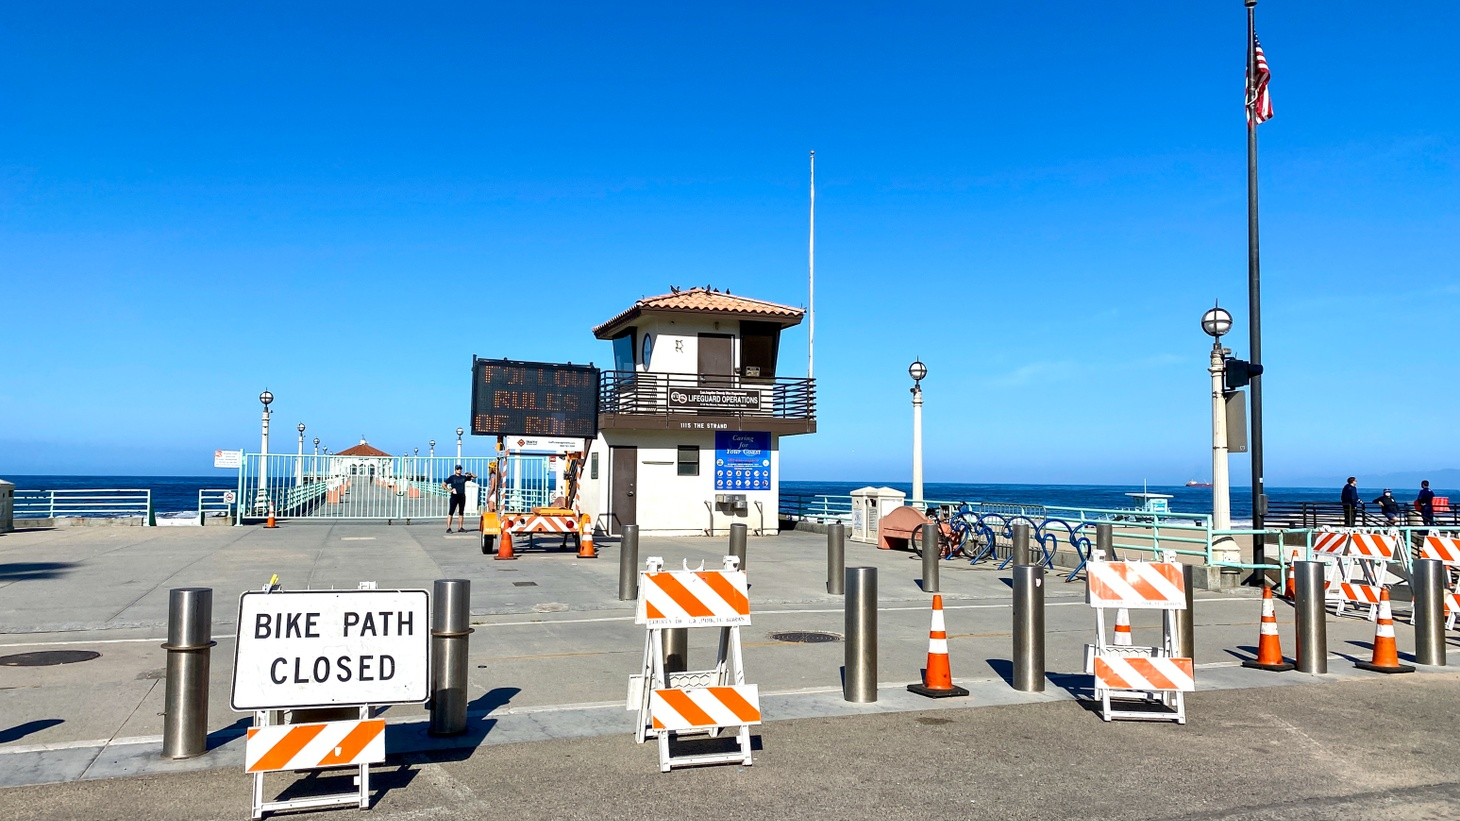 Manhattan Beach pier has been closed due to COVID-19. LA County hopes to reopen the economy and lift stay-at-home restrictions by July 4, 2020.